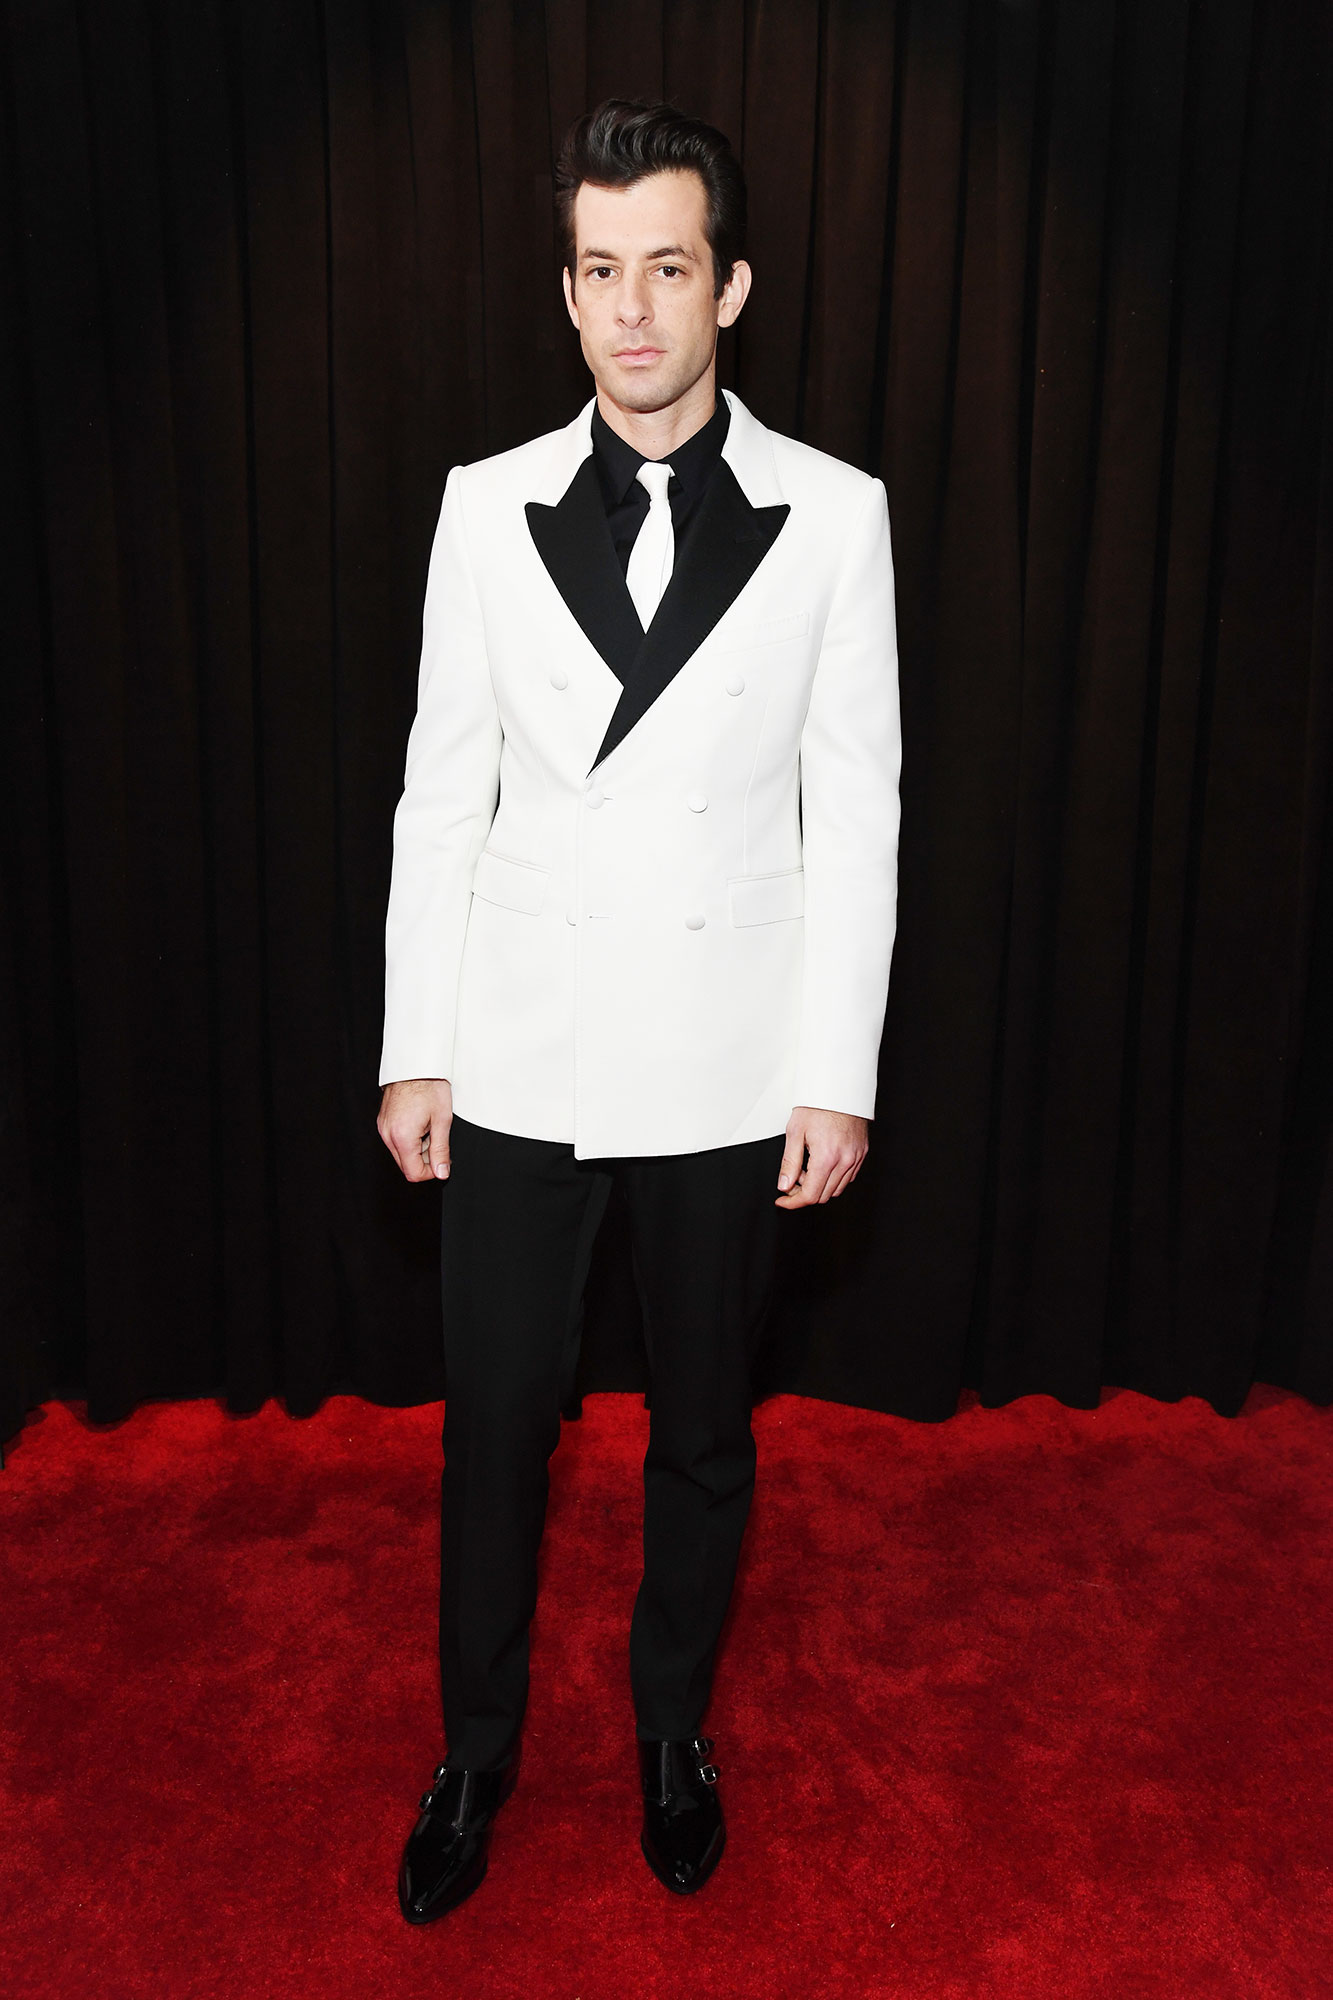 Mark Ronson grammys 2019 - The Grammy winner looked sharp in a black and white Celine suit.